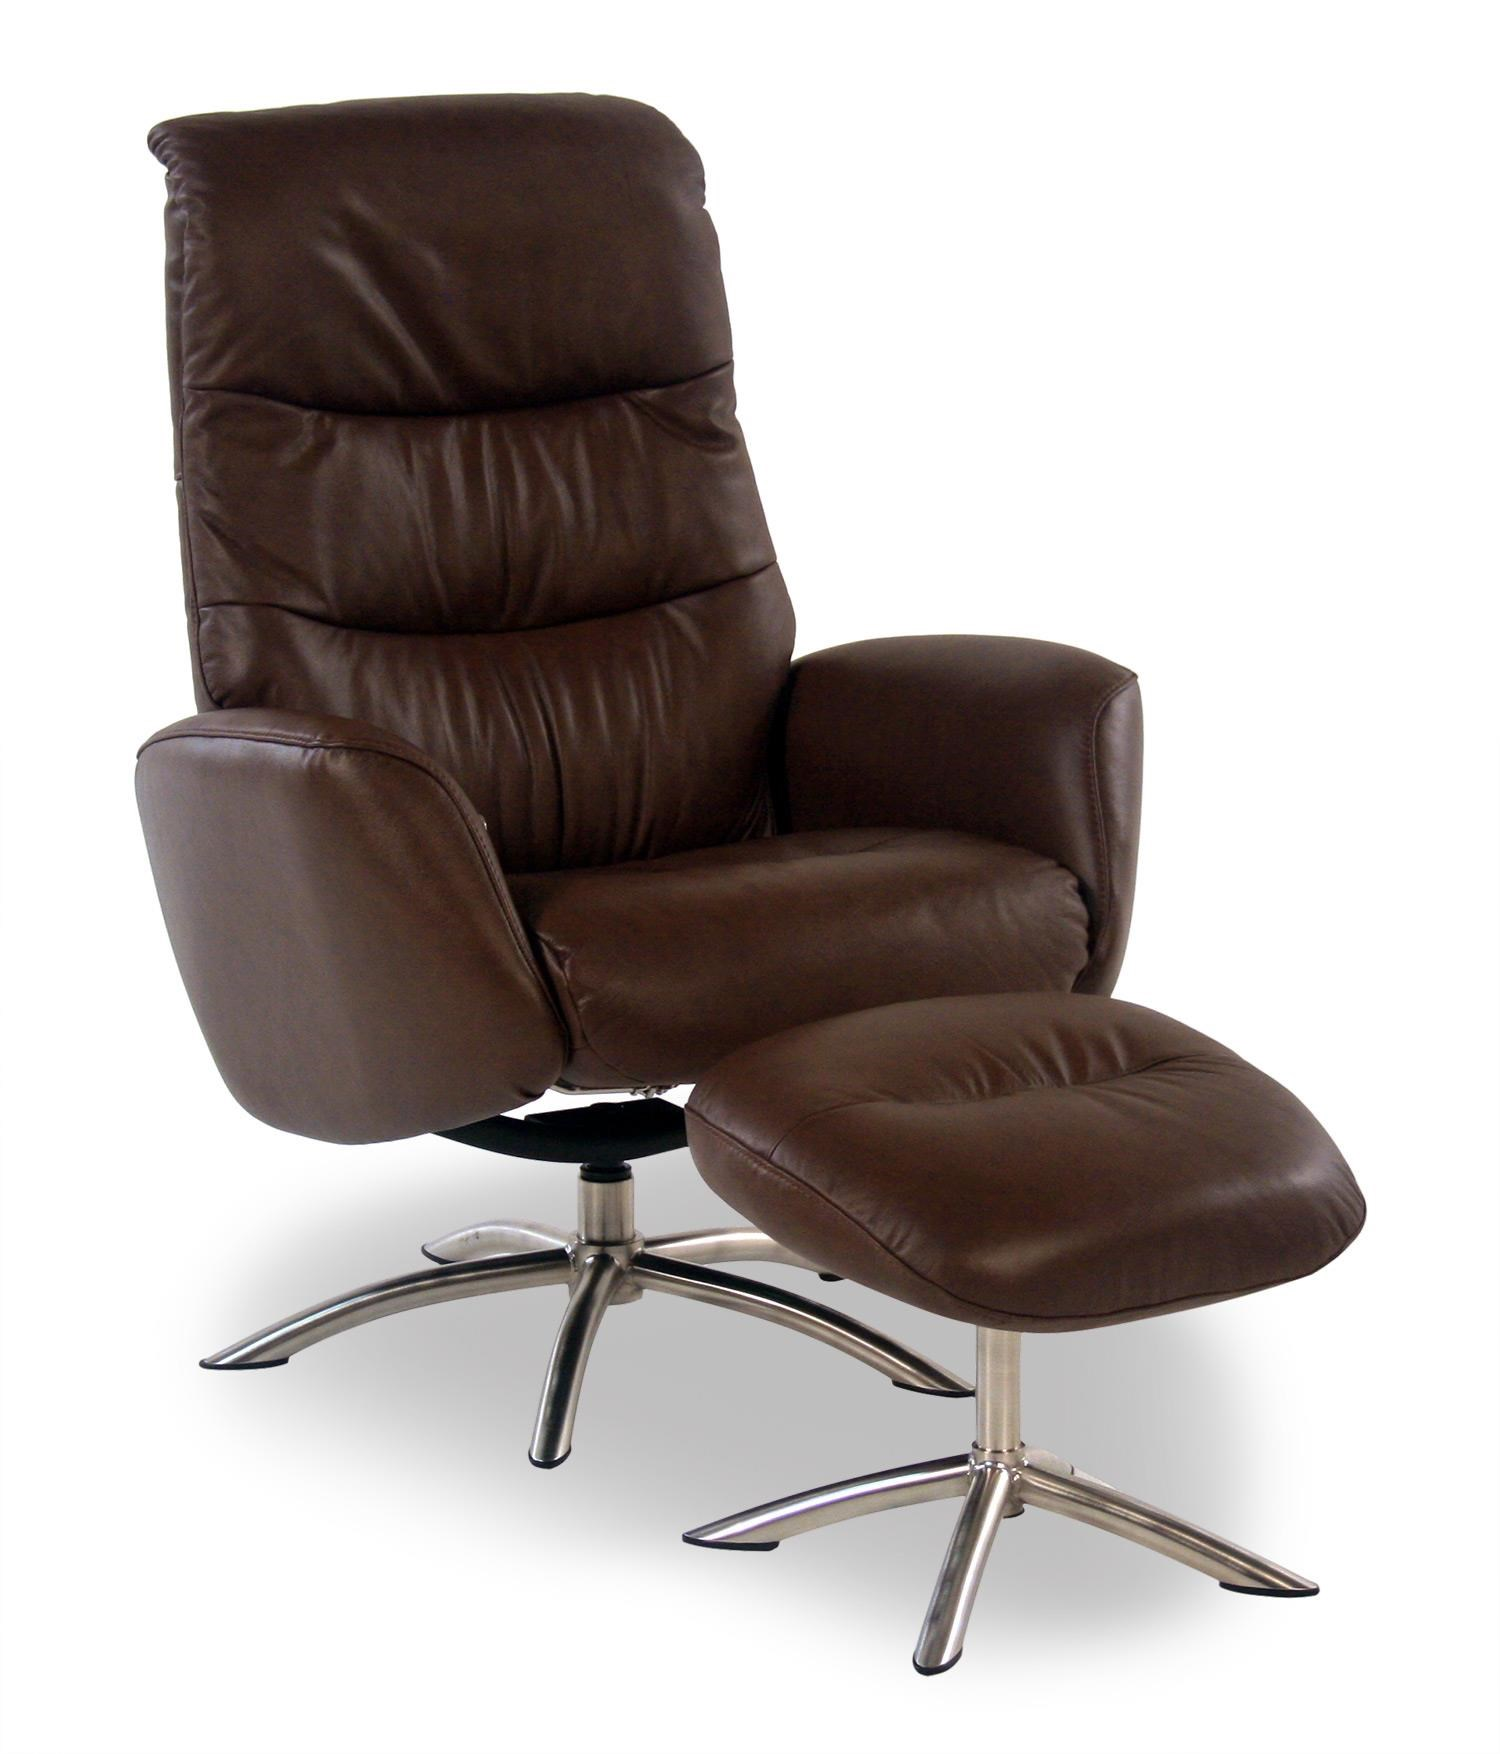 Palliser Quantum Leather Reclining Chair and Ottoman - Item Number: 50003-02-MOCHA